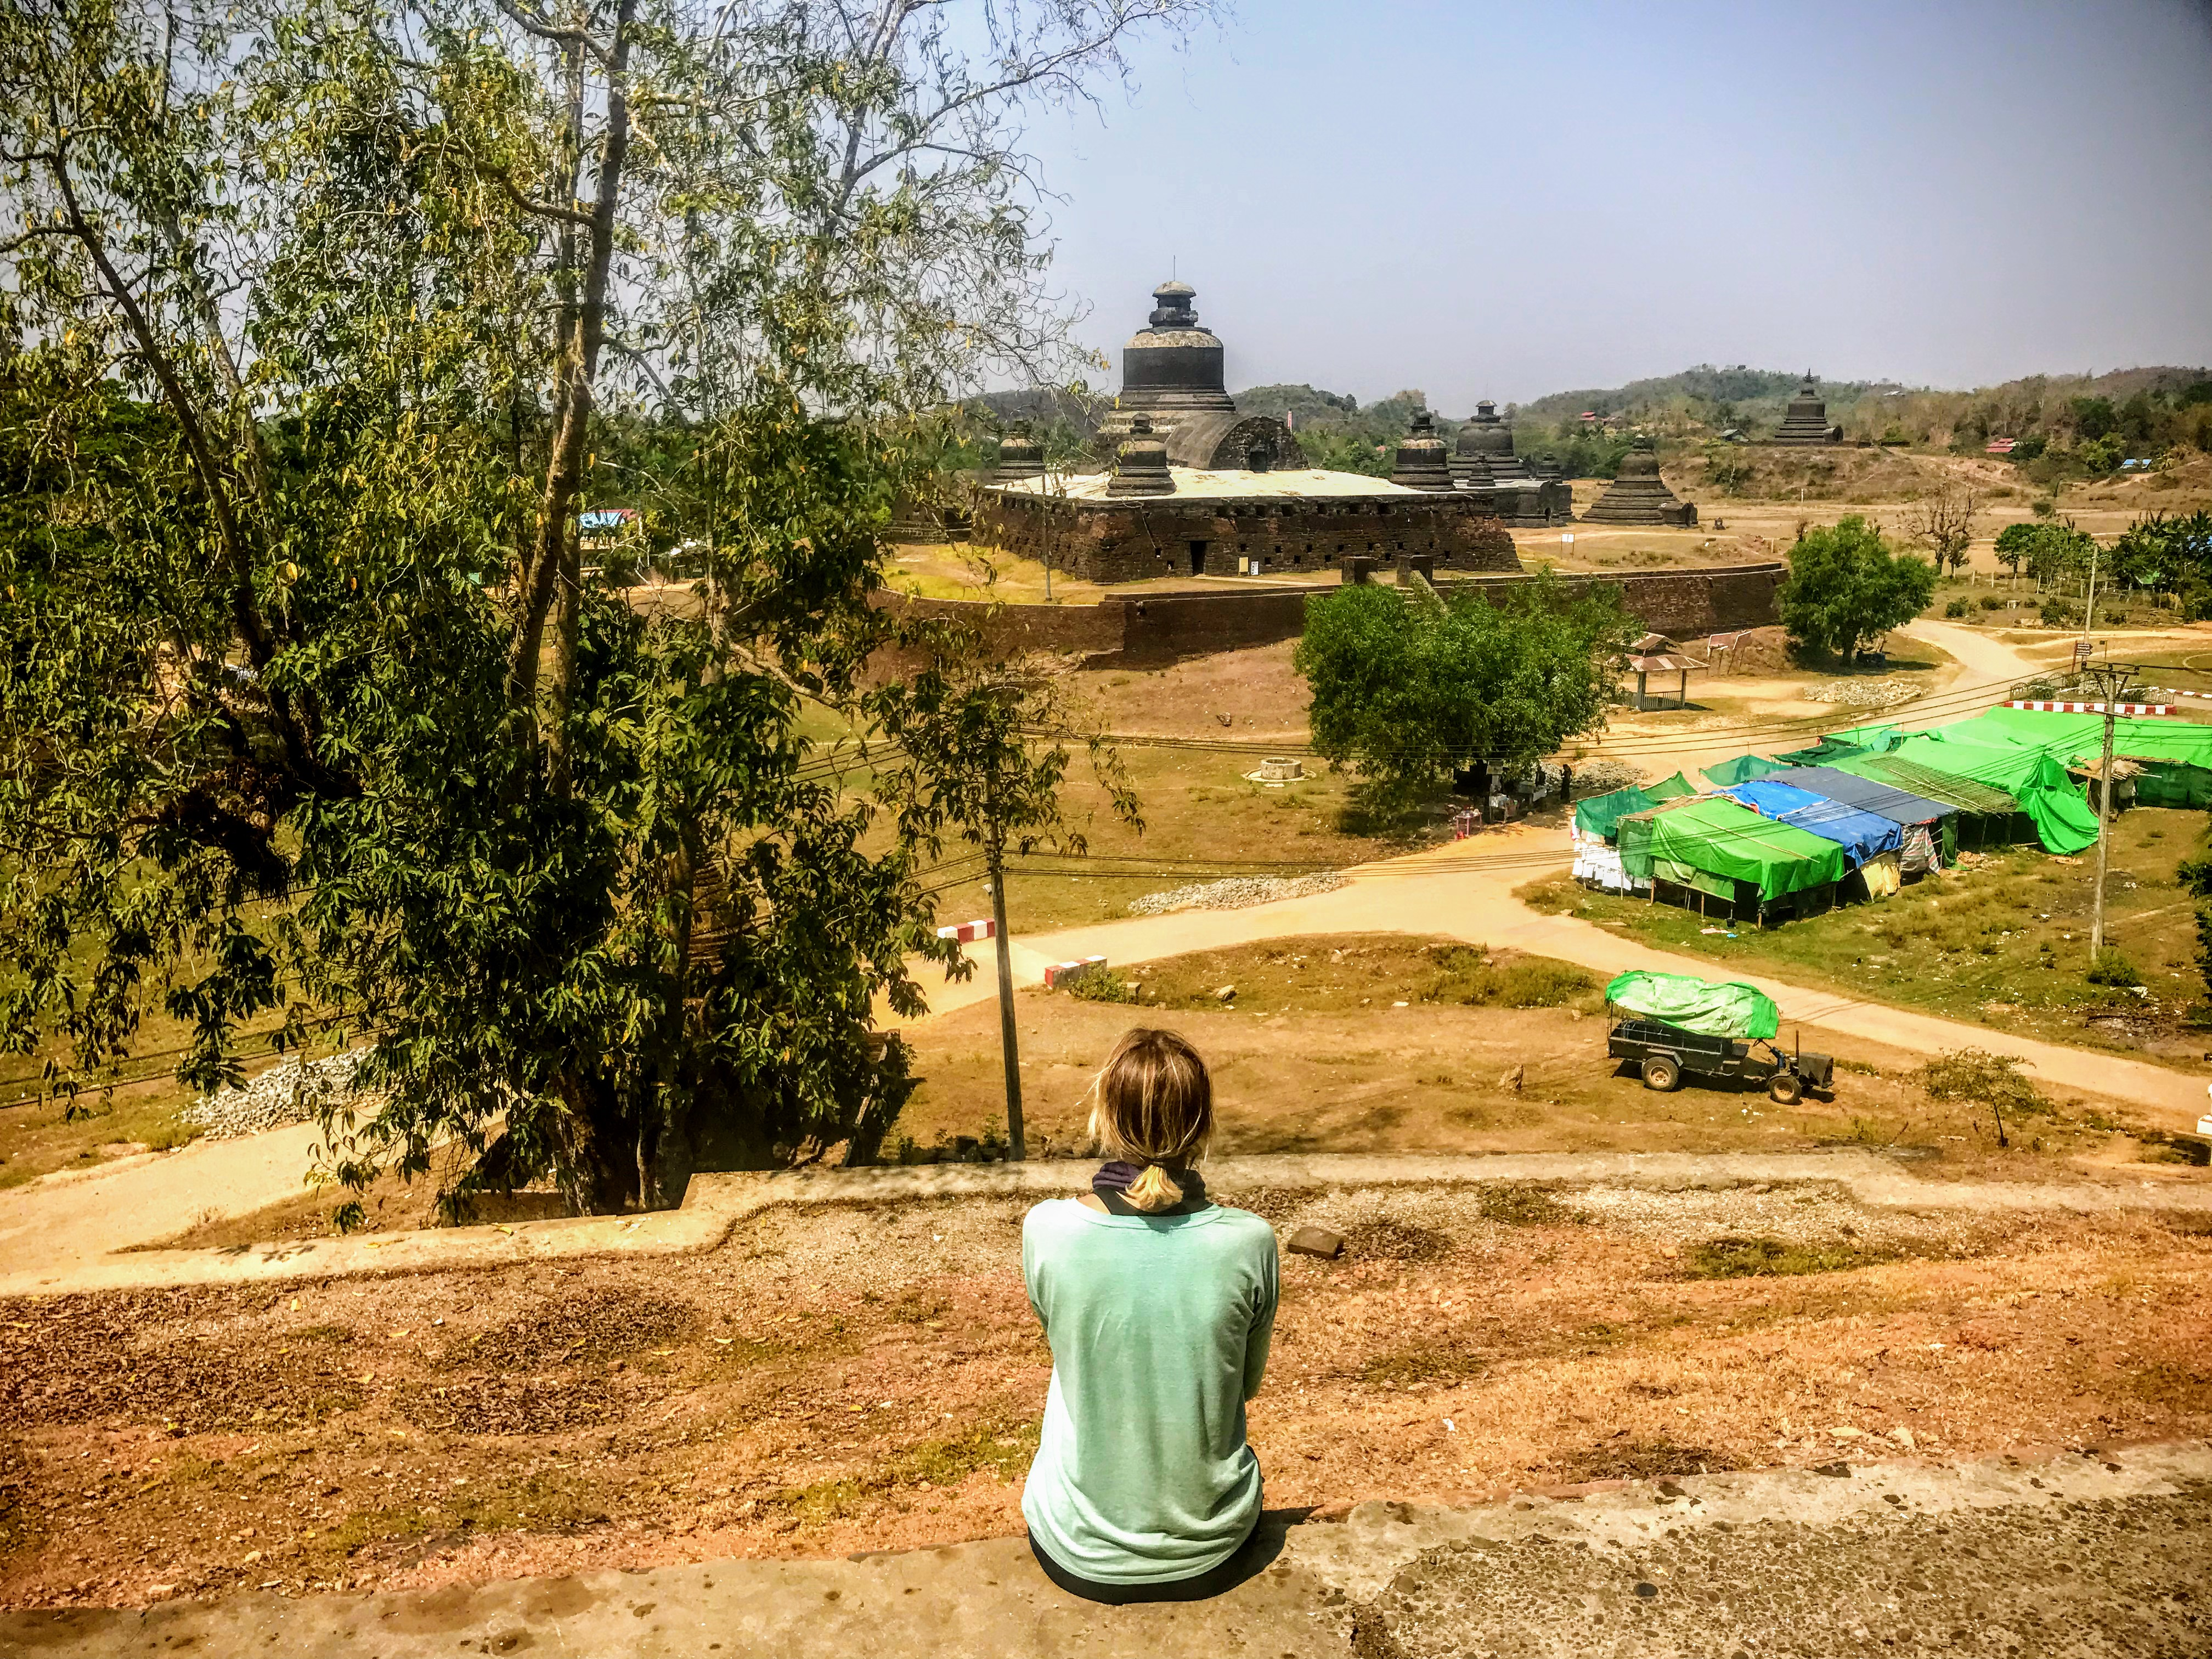 Looking at Htukkanthein Temple in Mrauk U, Myanmar